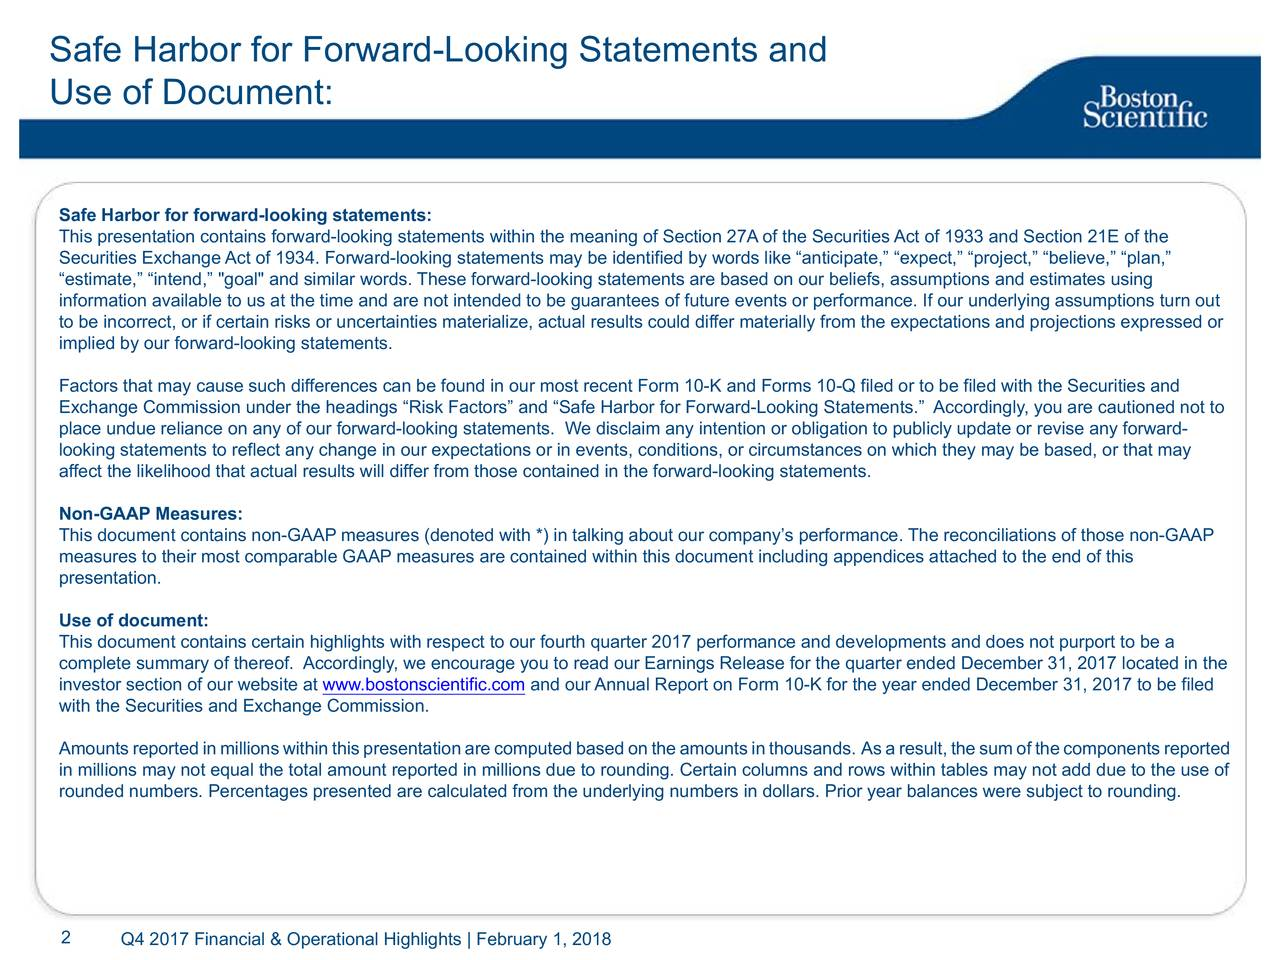 "Use of Document: Safe Harbor for forward-looking statements: This presentation contains forward-looking statements within the meaning of Section 27A of the Securities Act of 1933 and Section 21E of the Securities Exchange Act of 1934. Forward-looking statements may be identified by words like ""anticipate,"" ""expect,"" ""project,"" ""believe,"" ""plan,"" ""estimate,"" ""intend,"" ""goal"" and similar words. These forward-looking statements are based on our beliefs, assumptions and estimates using information available to us at the time and are not intended to be guarantees of future events or performance. If our underlying assumptions turn out to be incorrect, or if certain risks or uncertainties materialize, actual results could differ materially from the expectations and projections expressed or implied by our forward-looking statements. Factors that may cause such differences can be found in our most recent Form 10-K and Forms 10-Q filed or to be filed with the Securities and Exchange Commission under the headings ""Risk Factors"" and ""Safe Harbor for Forward-Looking Statements."" Accordingly, you are cautioned not to place undue reliance on any of our forward-looking statements. We disclaim any intention or obligation to publicly update or revise any forward- looking statements to reflect any change in our expectations or in events, conditions, or circumstances on which they may be based, or that may affect the likelihood that actual results will differ from those contained in the forward-looking statements. Non-GAAP Measures: This document contains non-GAAP measures (denoted with *) in talking about our company's performance. The reconciliations of those non-GAAP measures to their most comparable GAAP measures are contained within this document including appendices attached to the end of this presentation. Use of document: This document contains certain highlights with respect to our fourth quarter 2017 performance and developments and does not purport to be a complete summary of thereof. Accordingly, we encourage you to read our Earnings Release for the quarter ended December 31, 2017 located in the investor section of our website at www.bostonscientific.com and our Annual Report on Form 10-K for the year ended December 31, 2017 to be filed with the Securities and Exchange Commission. Amounts reported in millions within this presentation are computed based on the amounts in thousands. As a result, the sum of the components reported in millions may not equal the total amount reported in millions due to rounding. Certain columns and rows within tables may not add due to the use of rounded numbers. Percentages presented are calculated from the underlying numbers in dollars. Prior year balances were subject to rounding. 2 Q4 2017 Financial & Operational Highlights 